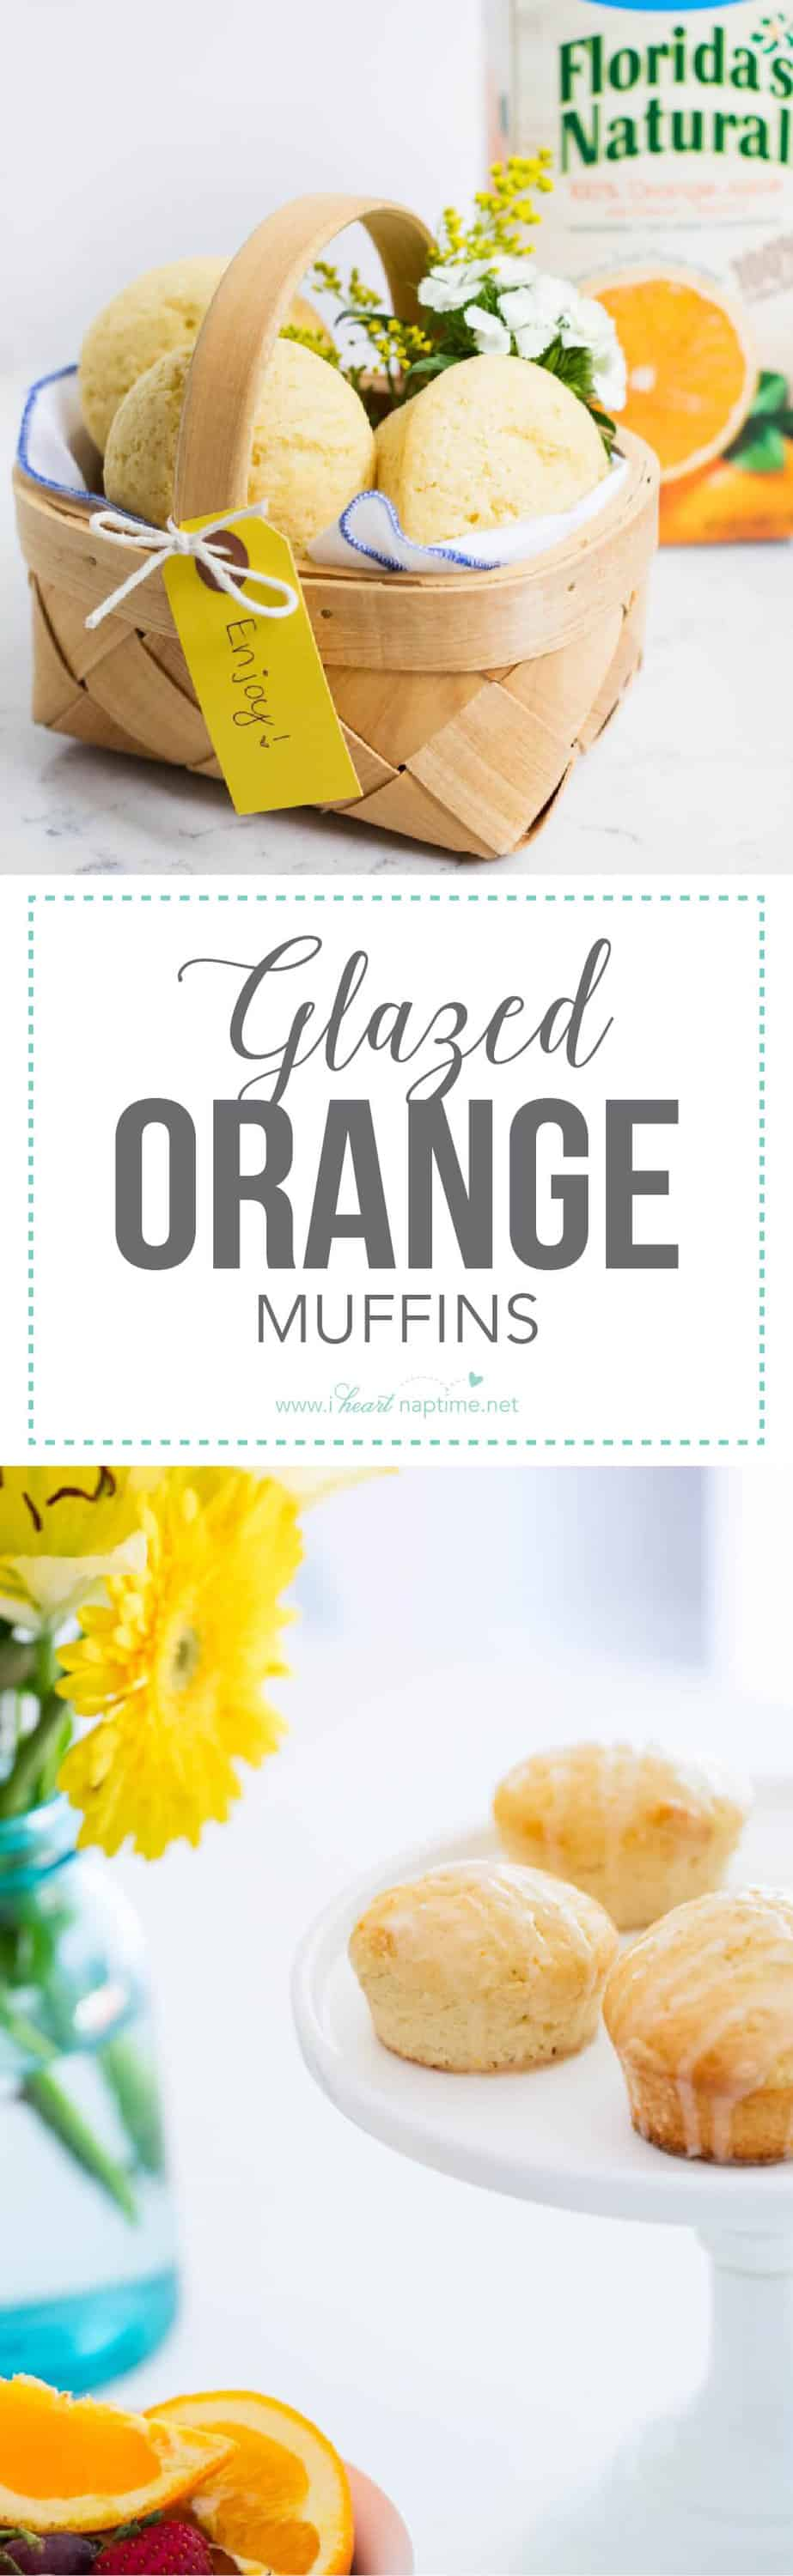 These glazed orange muffins would make the perfect start to any day! They make a great breakfast for busy morning or a quick afternoon snack. These muffins are super light, soft and bursting with orange flavor! The orange glaze adds just the right amount of sweetness.